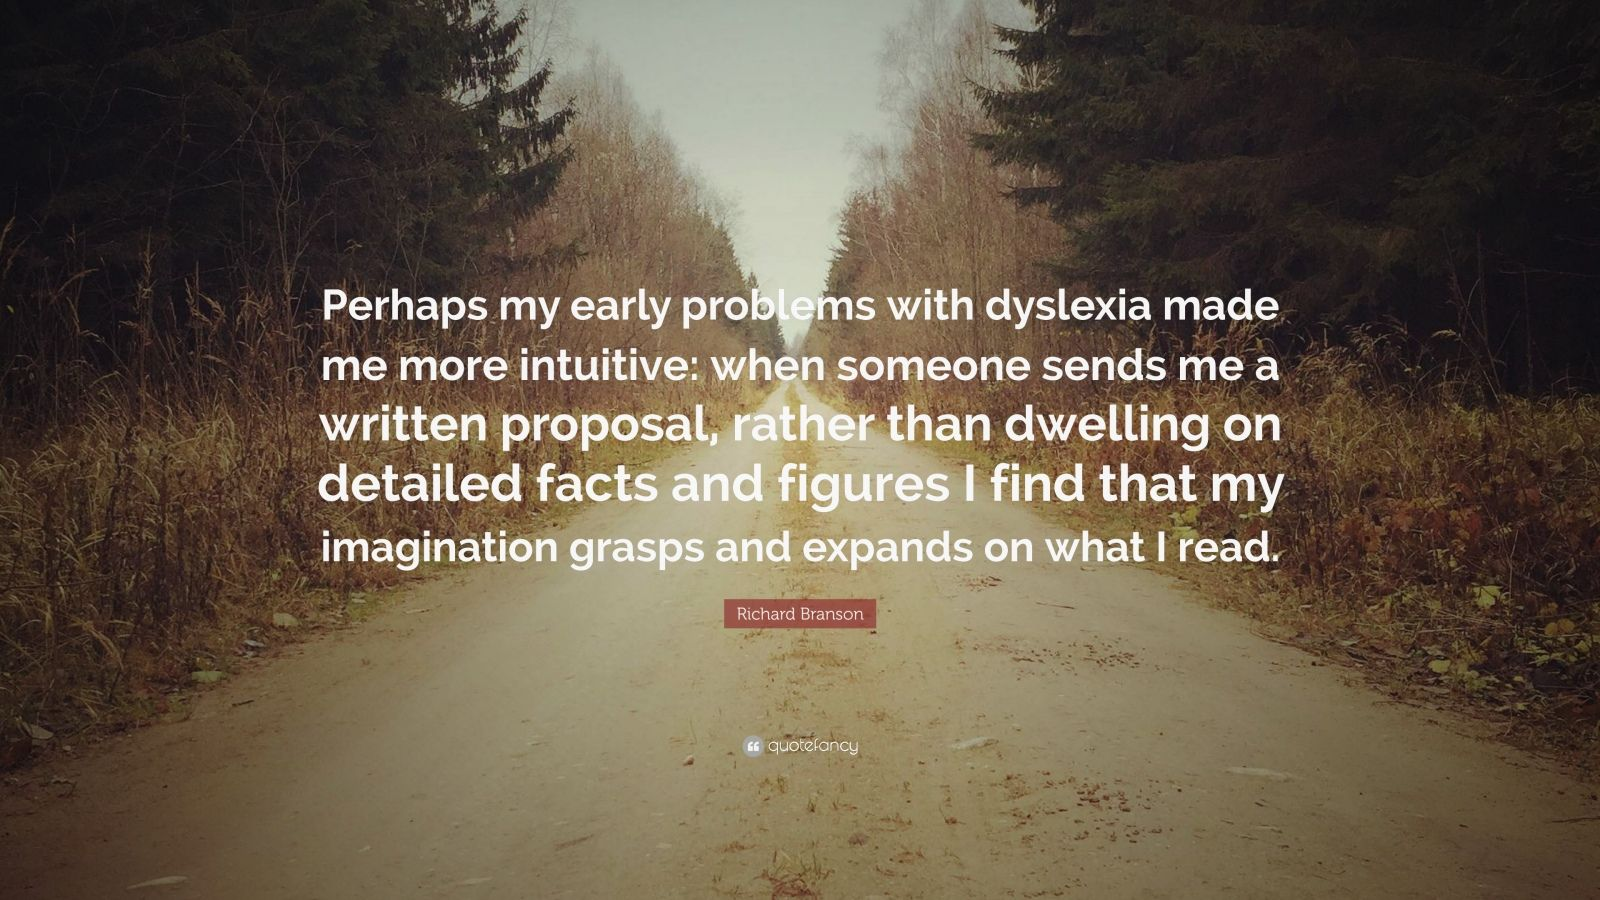 """Richard Branson Quote: """"Perhaps my early problems with dyslexia made me more intuitive: when someone sends me a written proposal, rather than dwelling on detailed facts and figures I find that my imagination grasps and expands on what I read."""""""